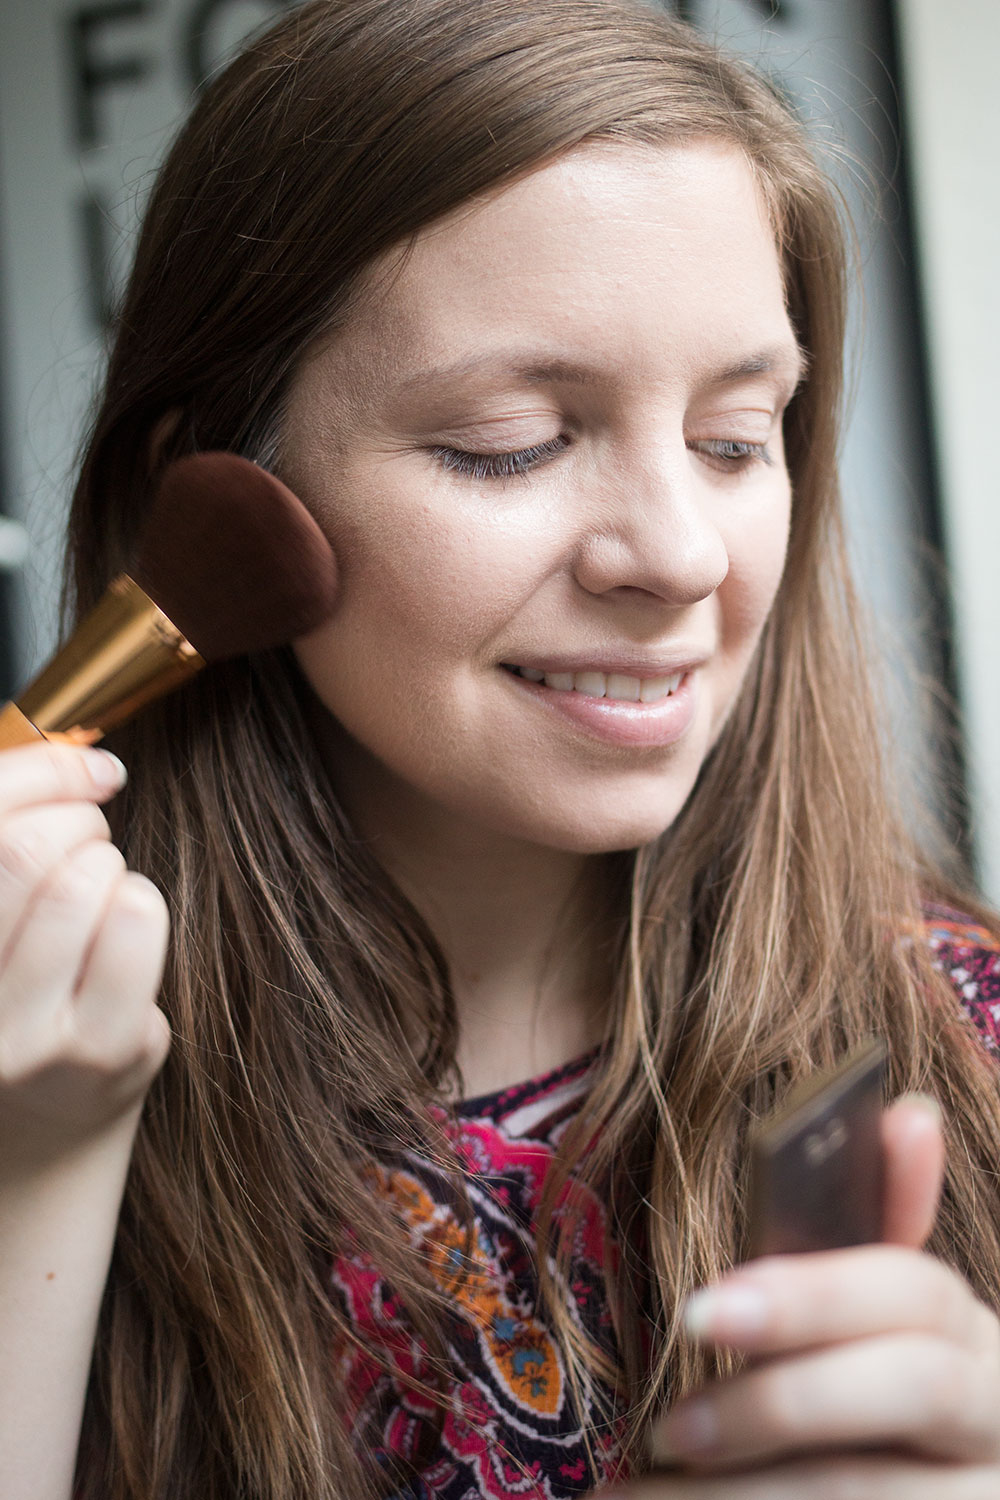 Tarte Cosmetics Bronze and Glow Contour Brush and Amazonian Clay Waterproof Bronzer in Park Avenue Princess Review // Hello Rigby Seattle Beauty Blog